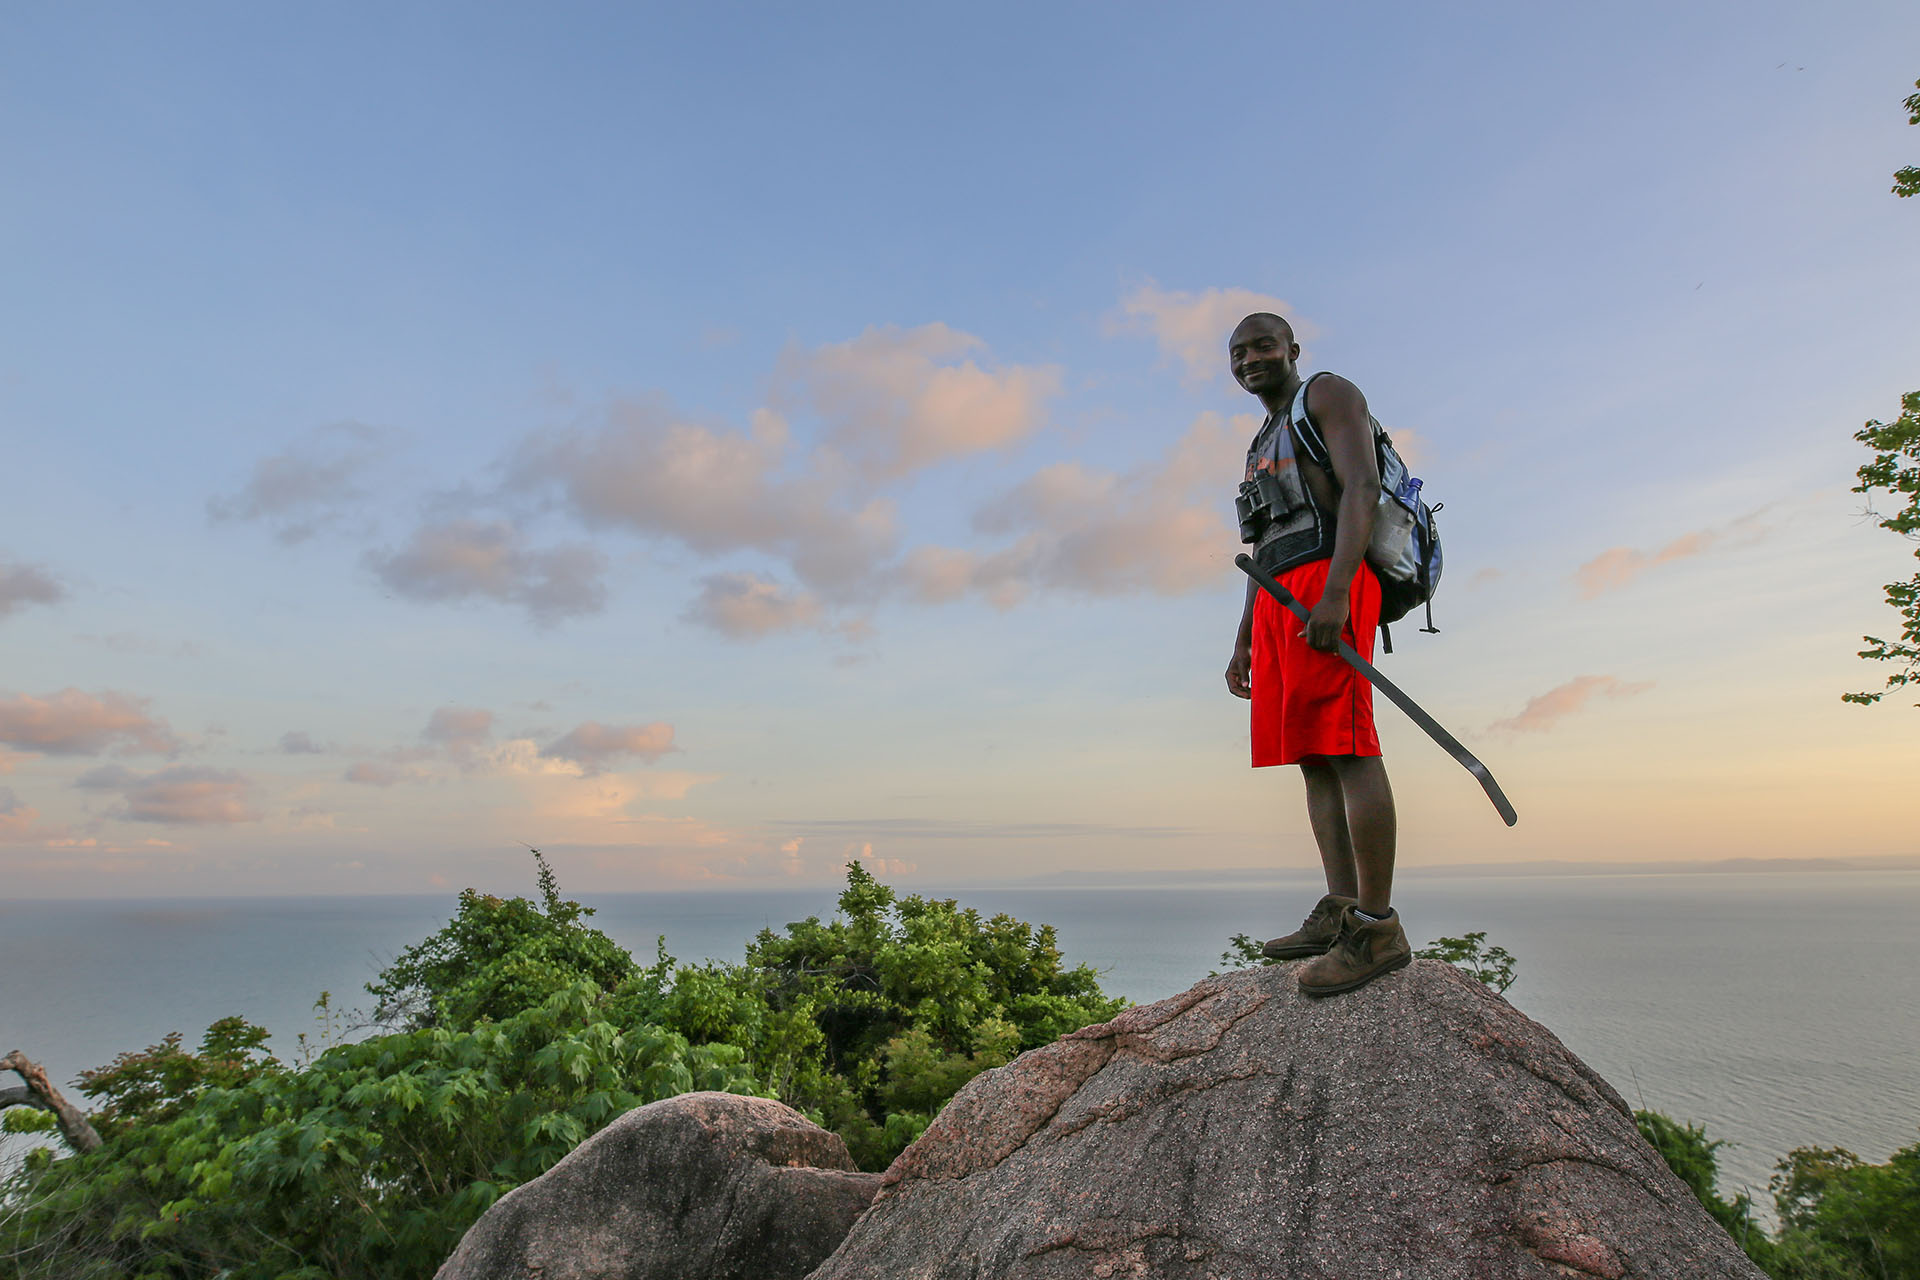 malawian-style-malawi-adventures-experiences-specialist-tour-operator-guided-hike